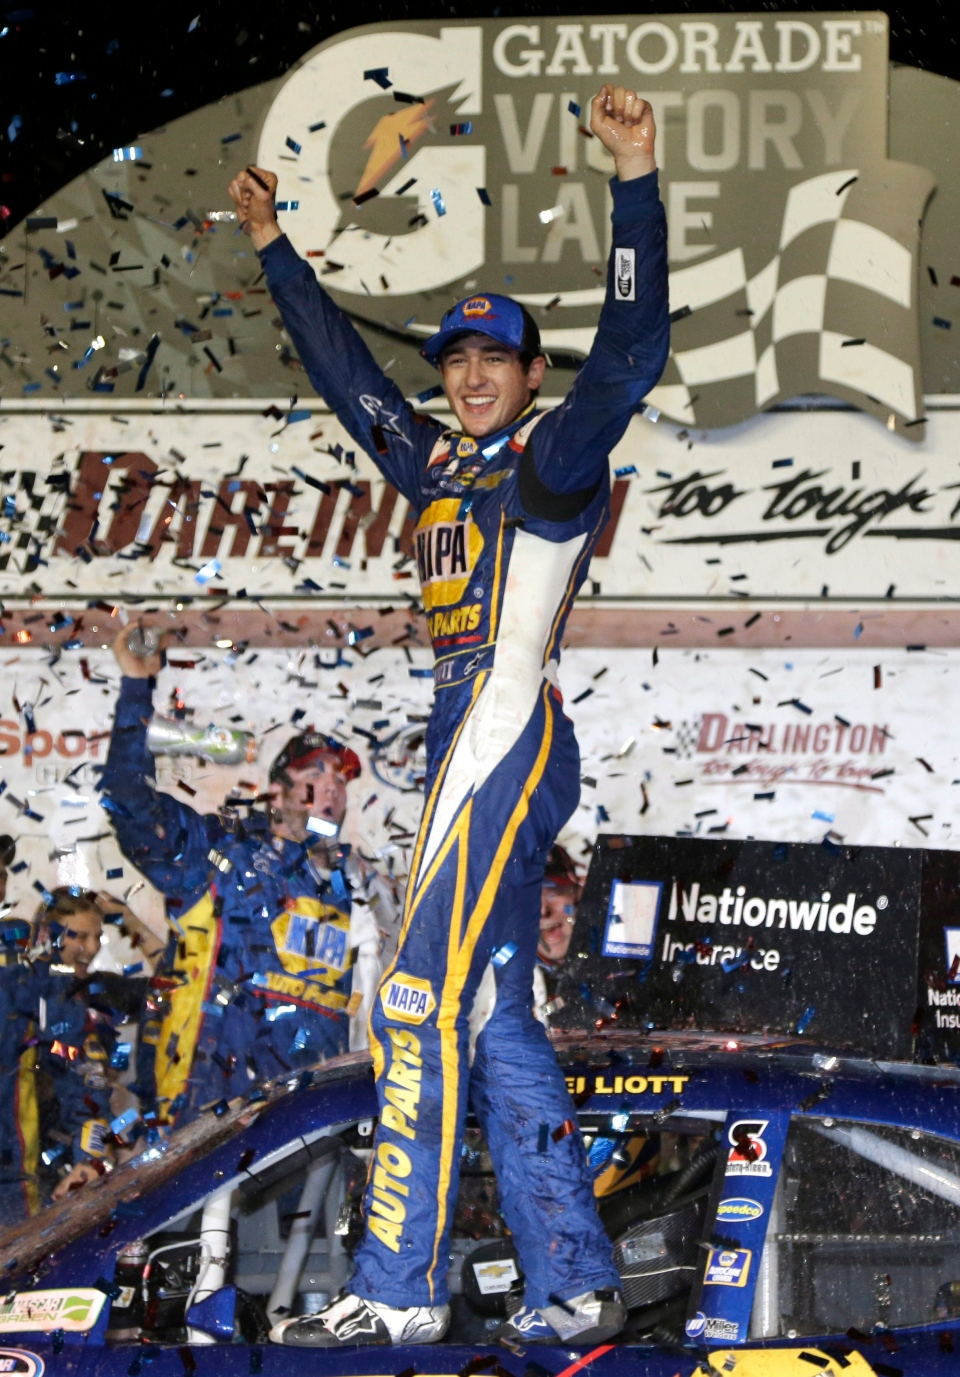 Chase Elliott celebrates in Victory lane after winning a NASCAR Nationwide series auto race at Darlington Speedway in Darlington, S.C., Friday, April 11, 2014. (AP / Chuck Burton)